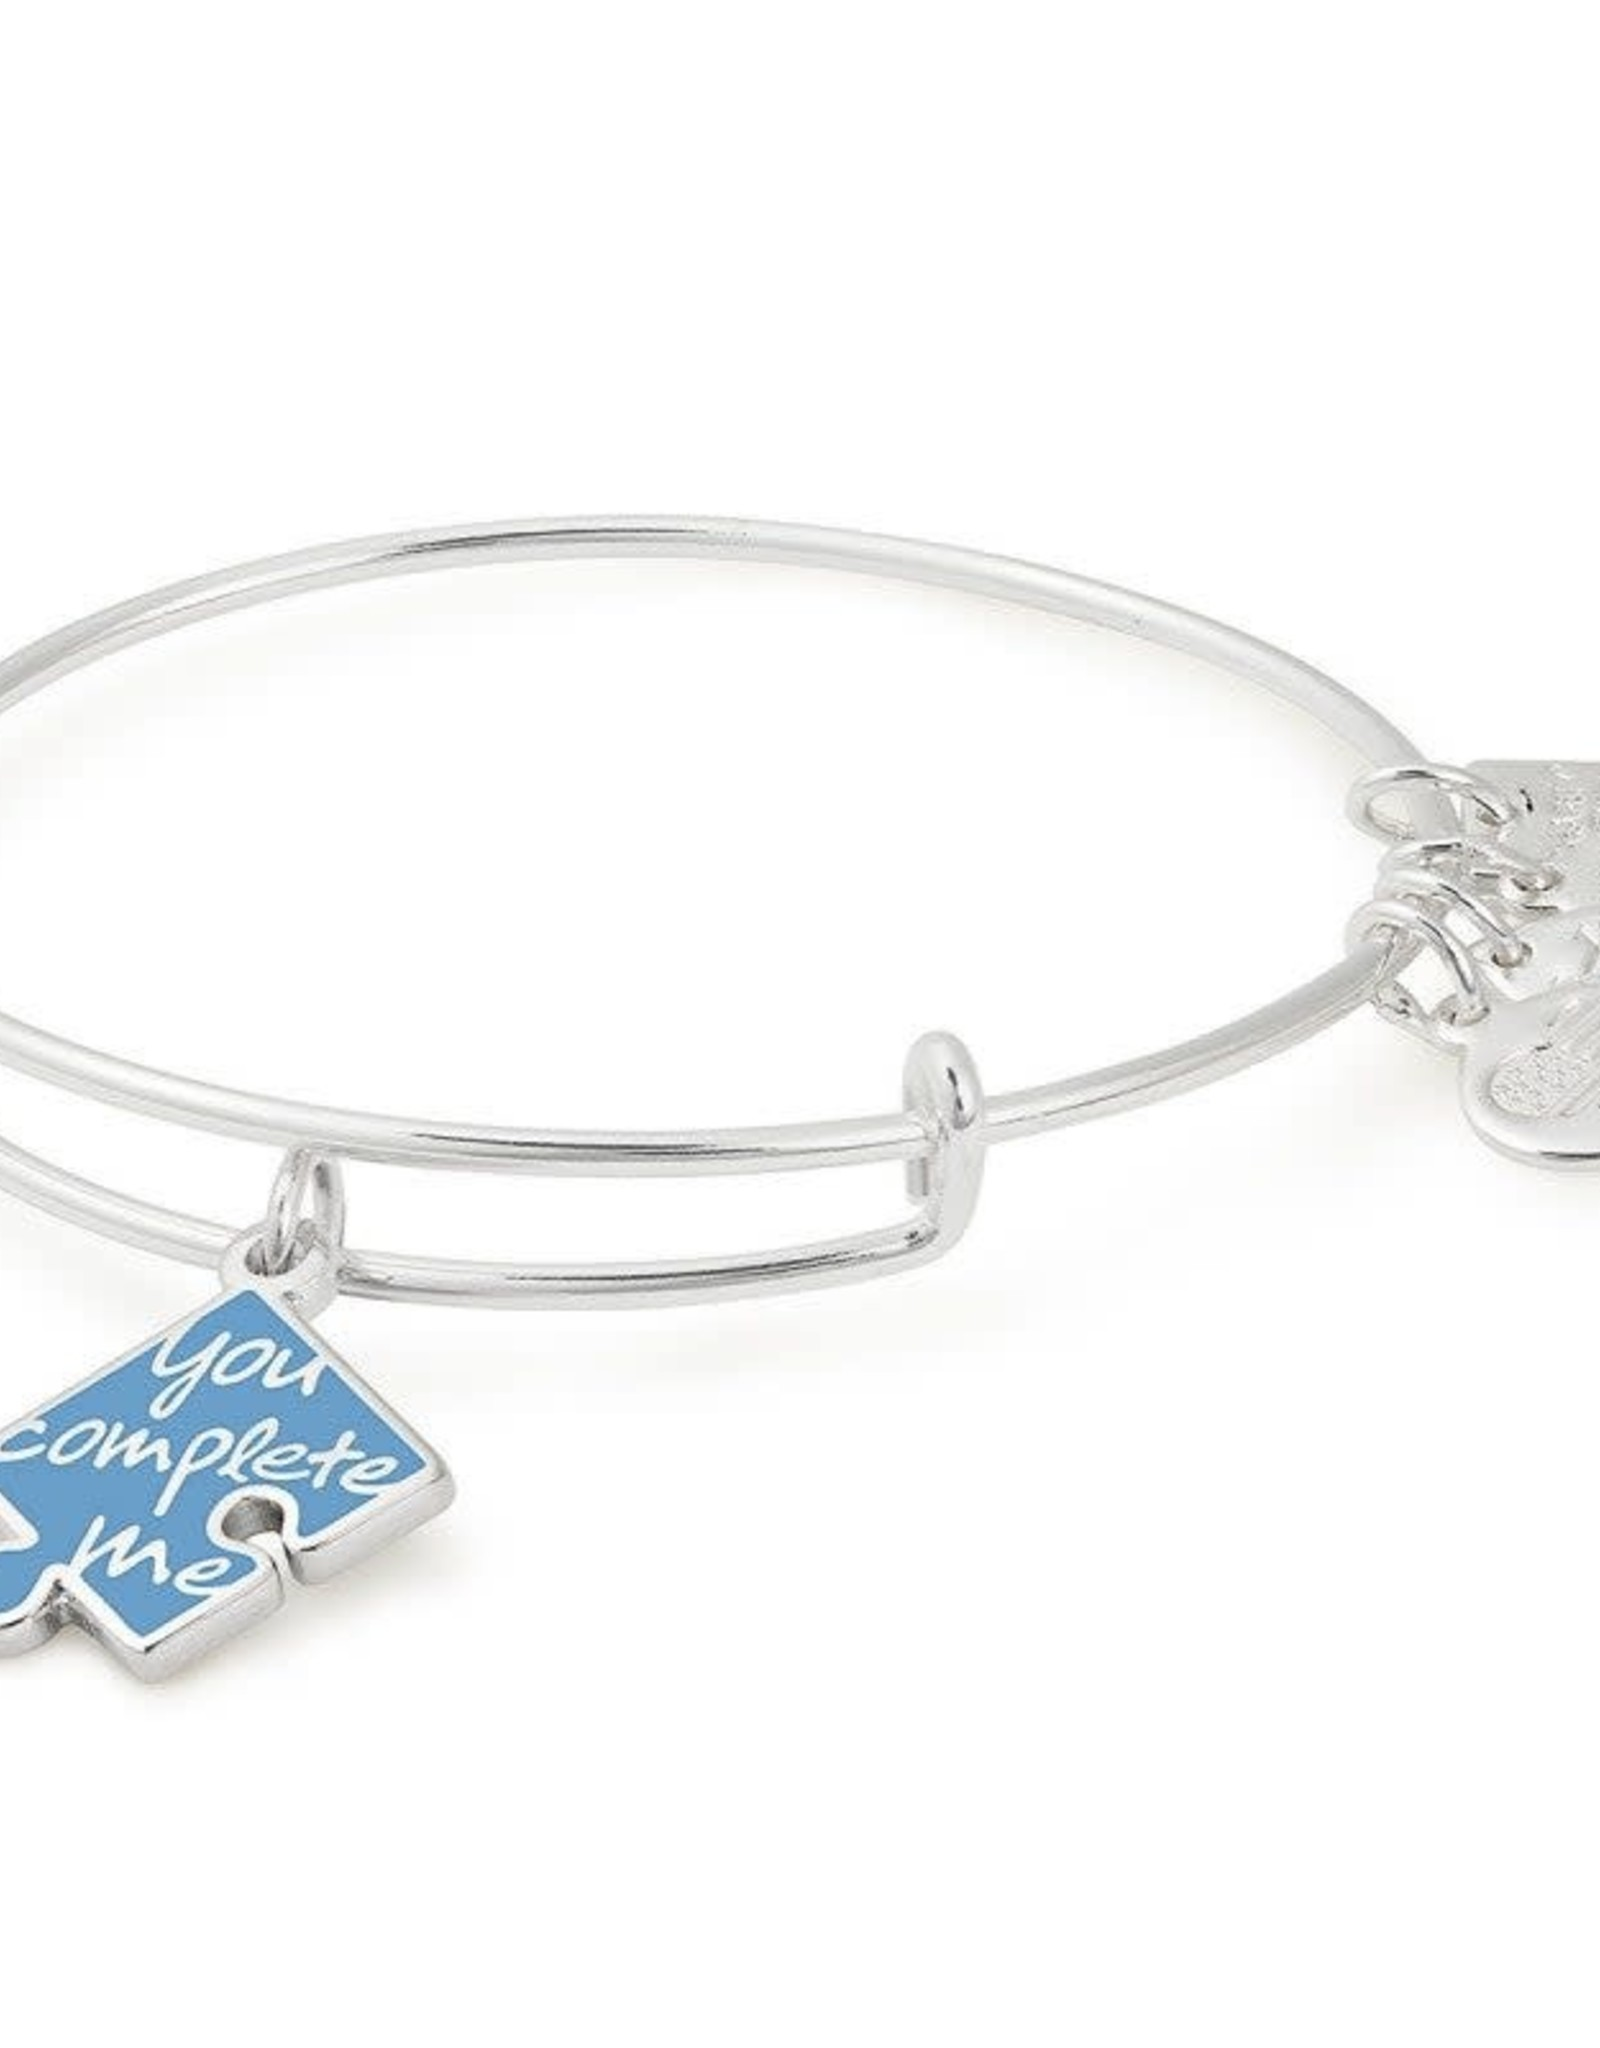 Alex and Ani You Complete Me, Charity by Design, SS